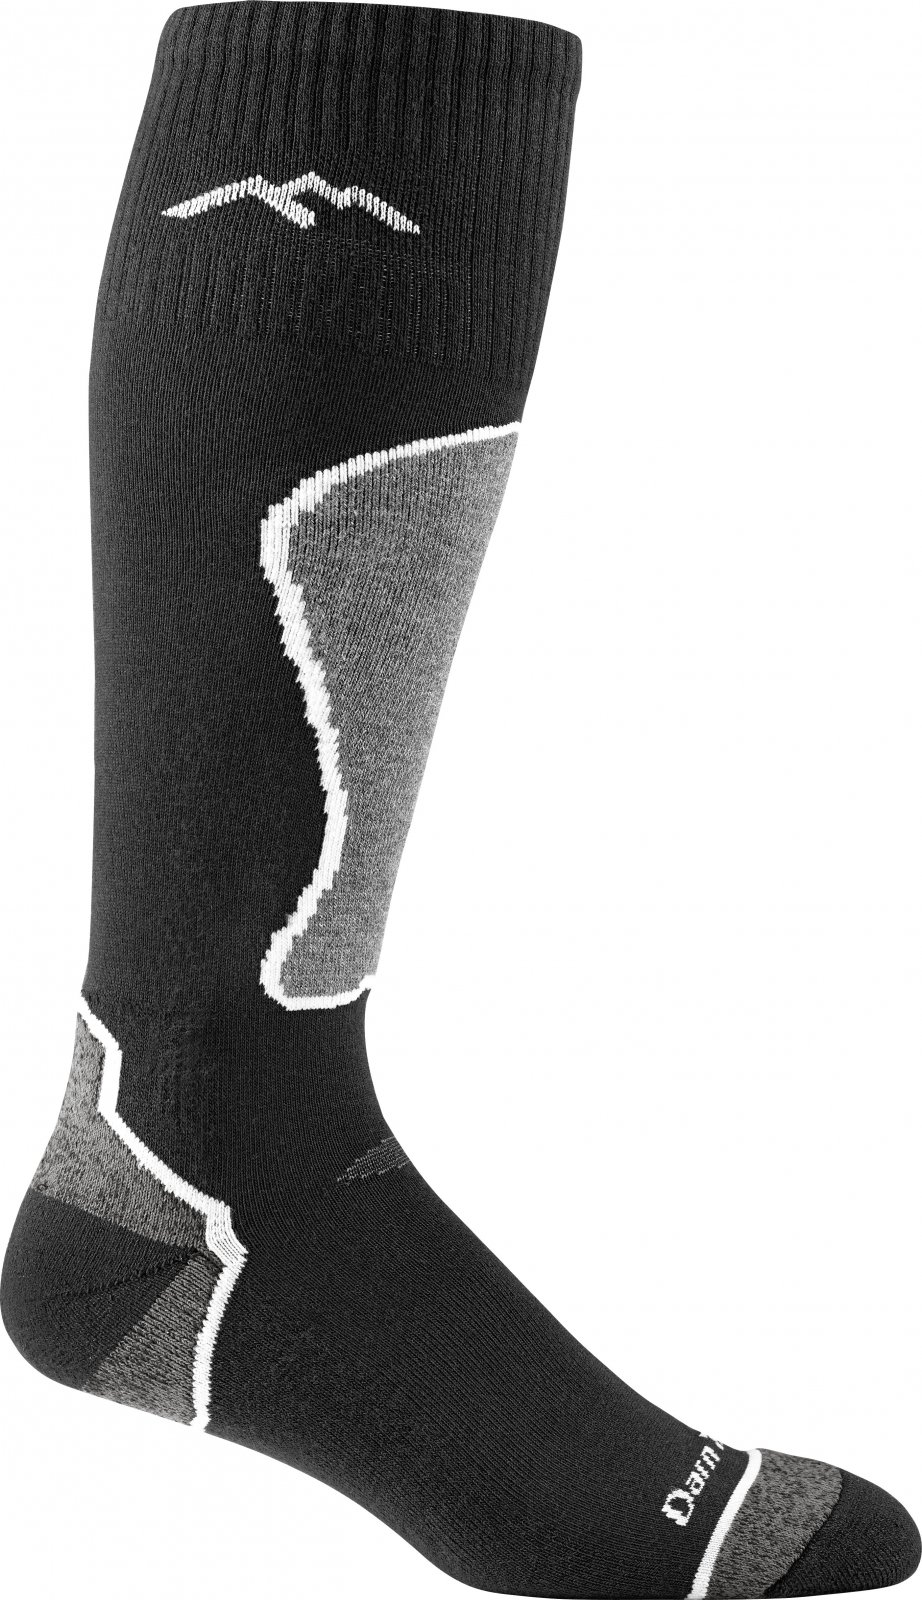 Darn Tough Thermolite OTC Midweight Snowboard Socks